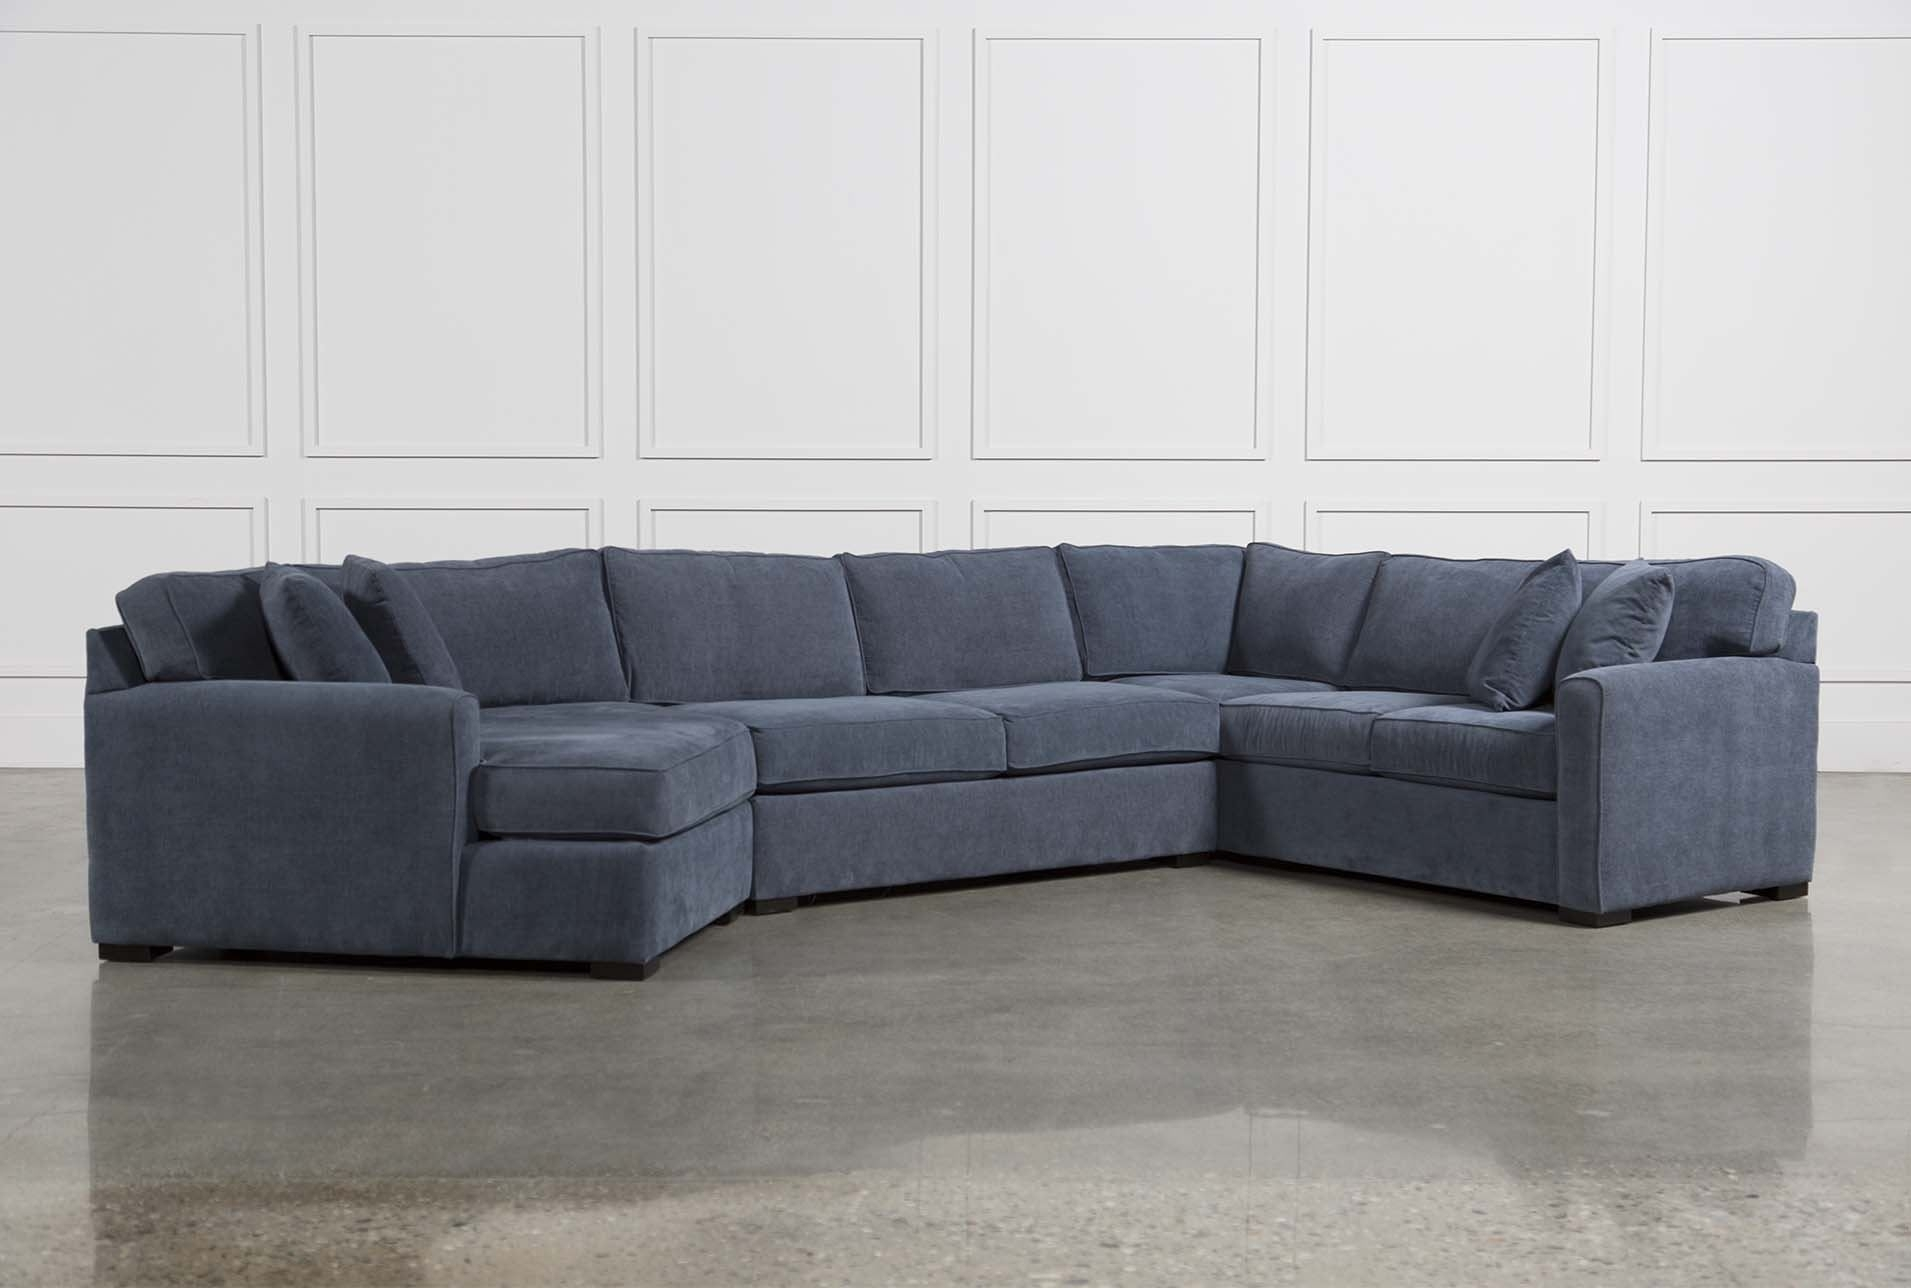 Cypress 3 Piece Sectional | Final Choices | Pinterest | Living Inside Glamour Ii 3 Piece Sectionals (View 4 of 25)